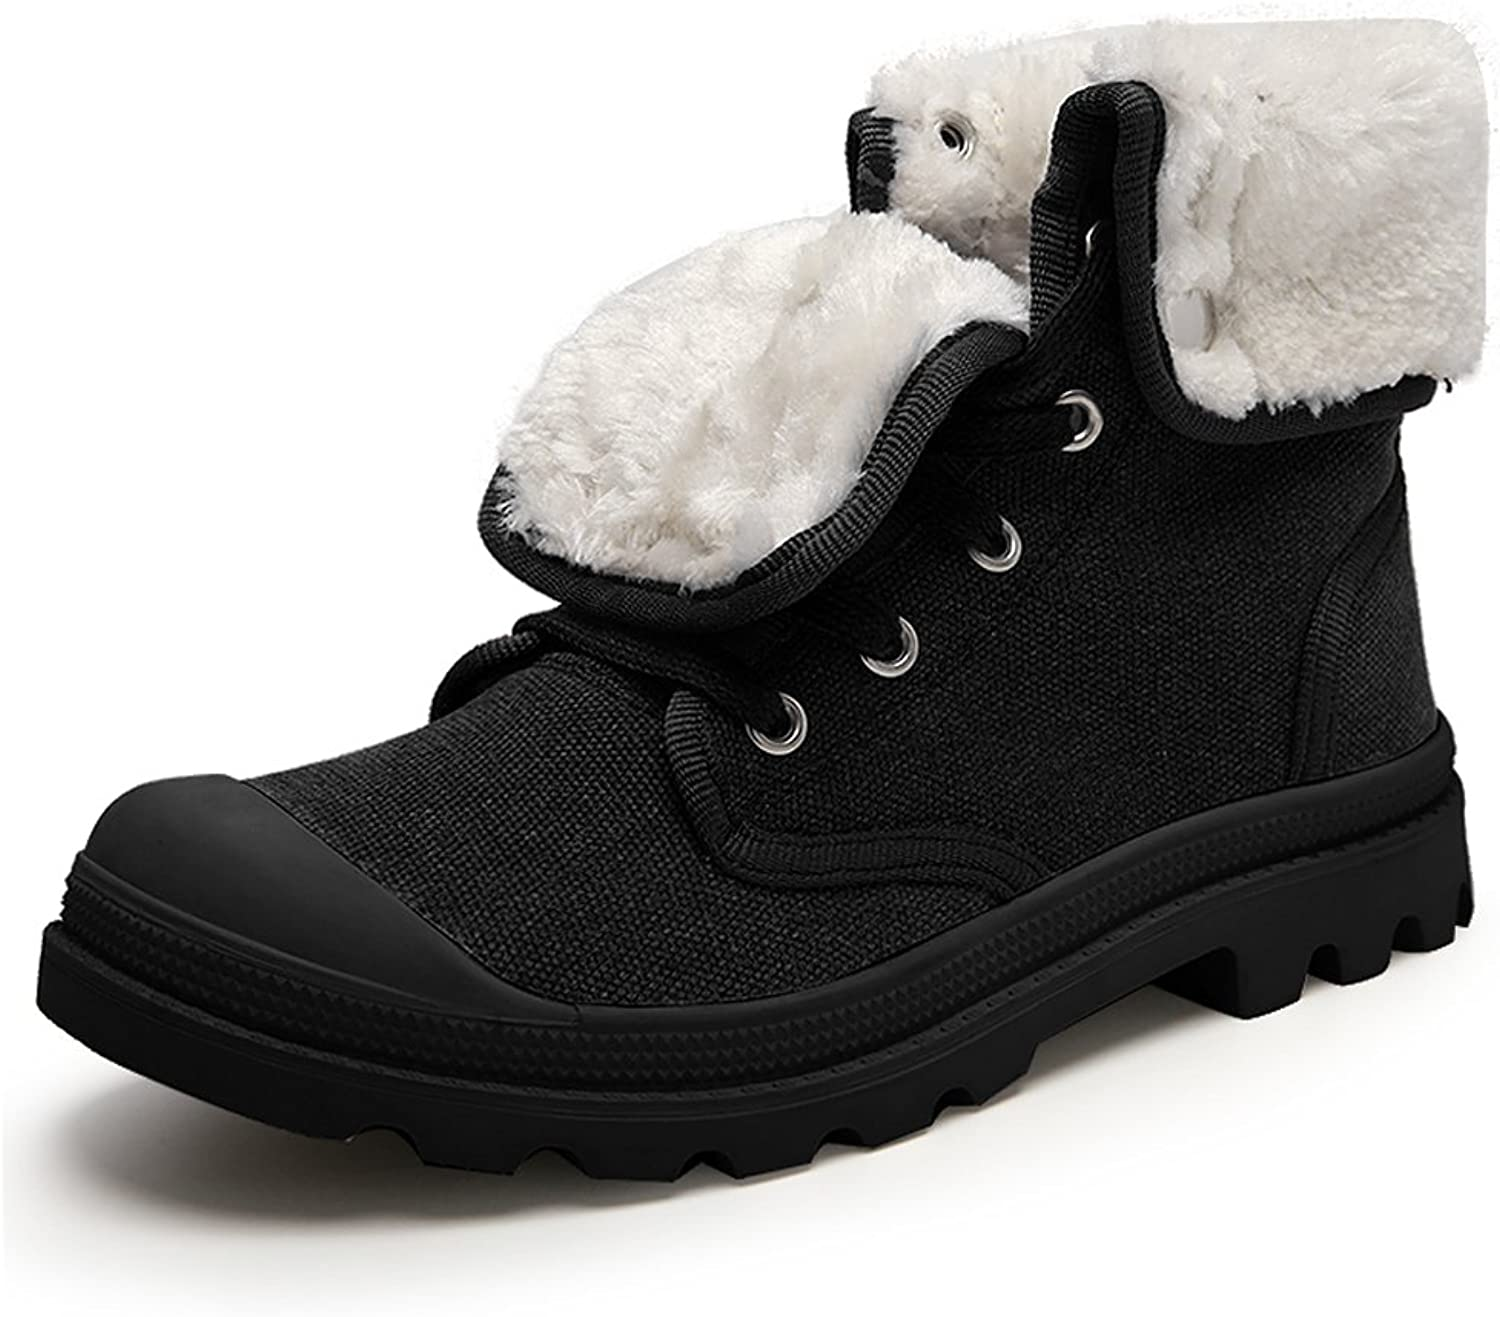 GOMNEAR Men Snow Boots Hiking shoes Lightweight Winter High Top AntiSlip Fur Lined Warm Canvas Sneaker